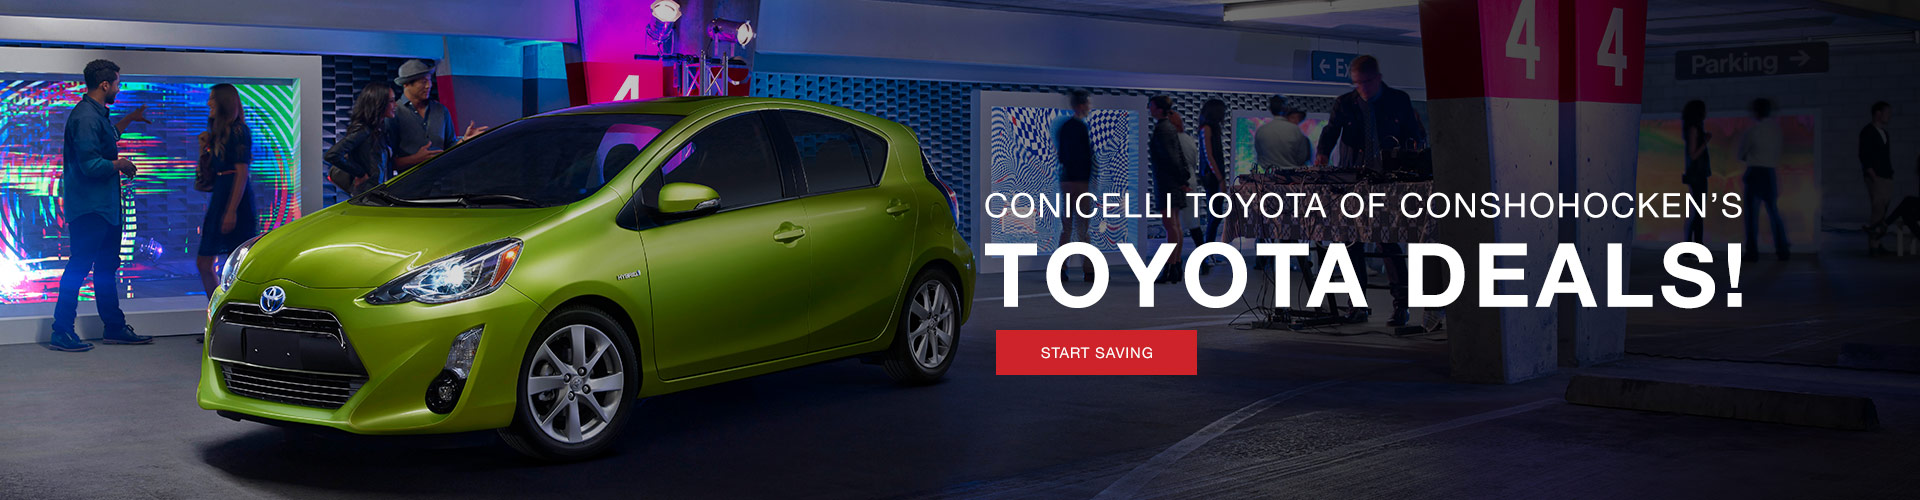 Toyota Deals